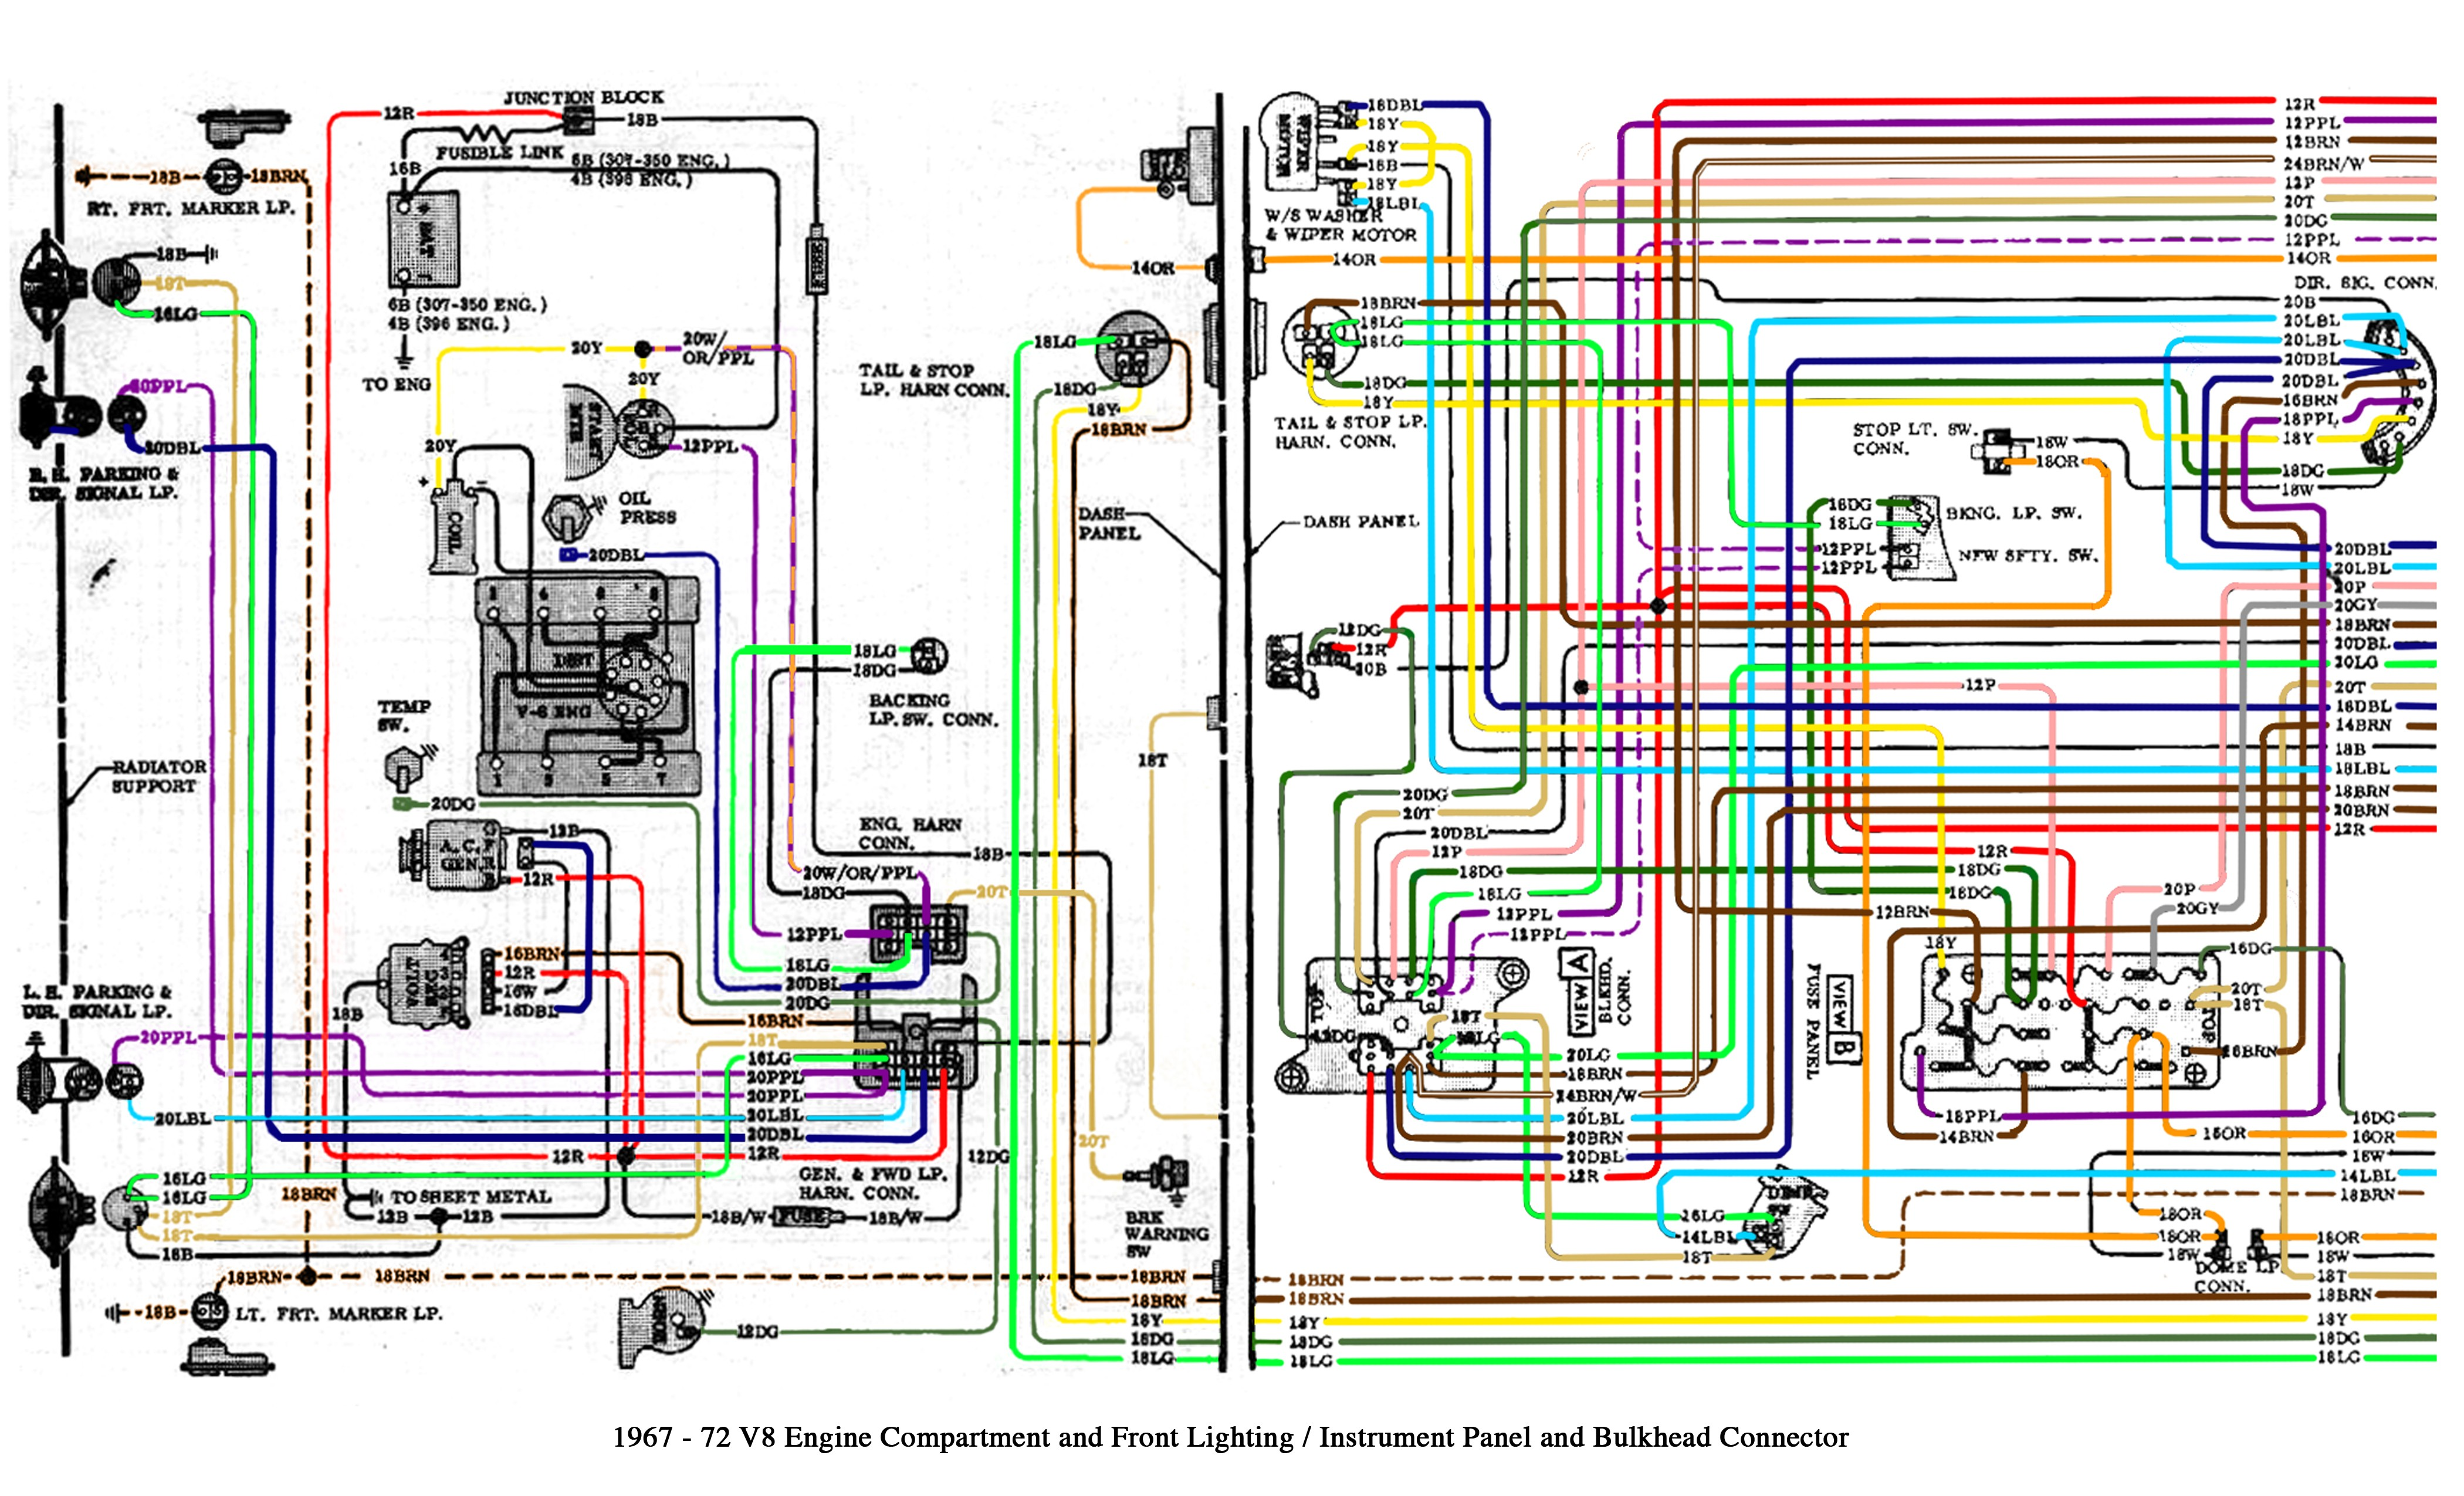 1964 Chevelle Horn Wiring Diagram Wiring Diagram Inspection Inspection Consorziofiuggiturismo It